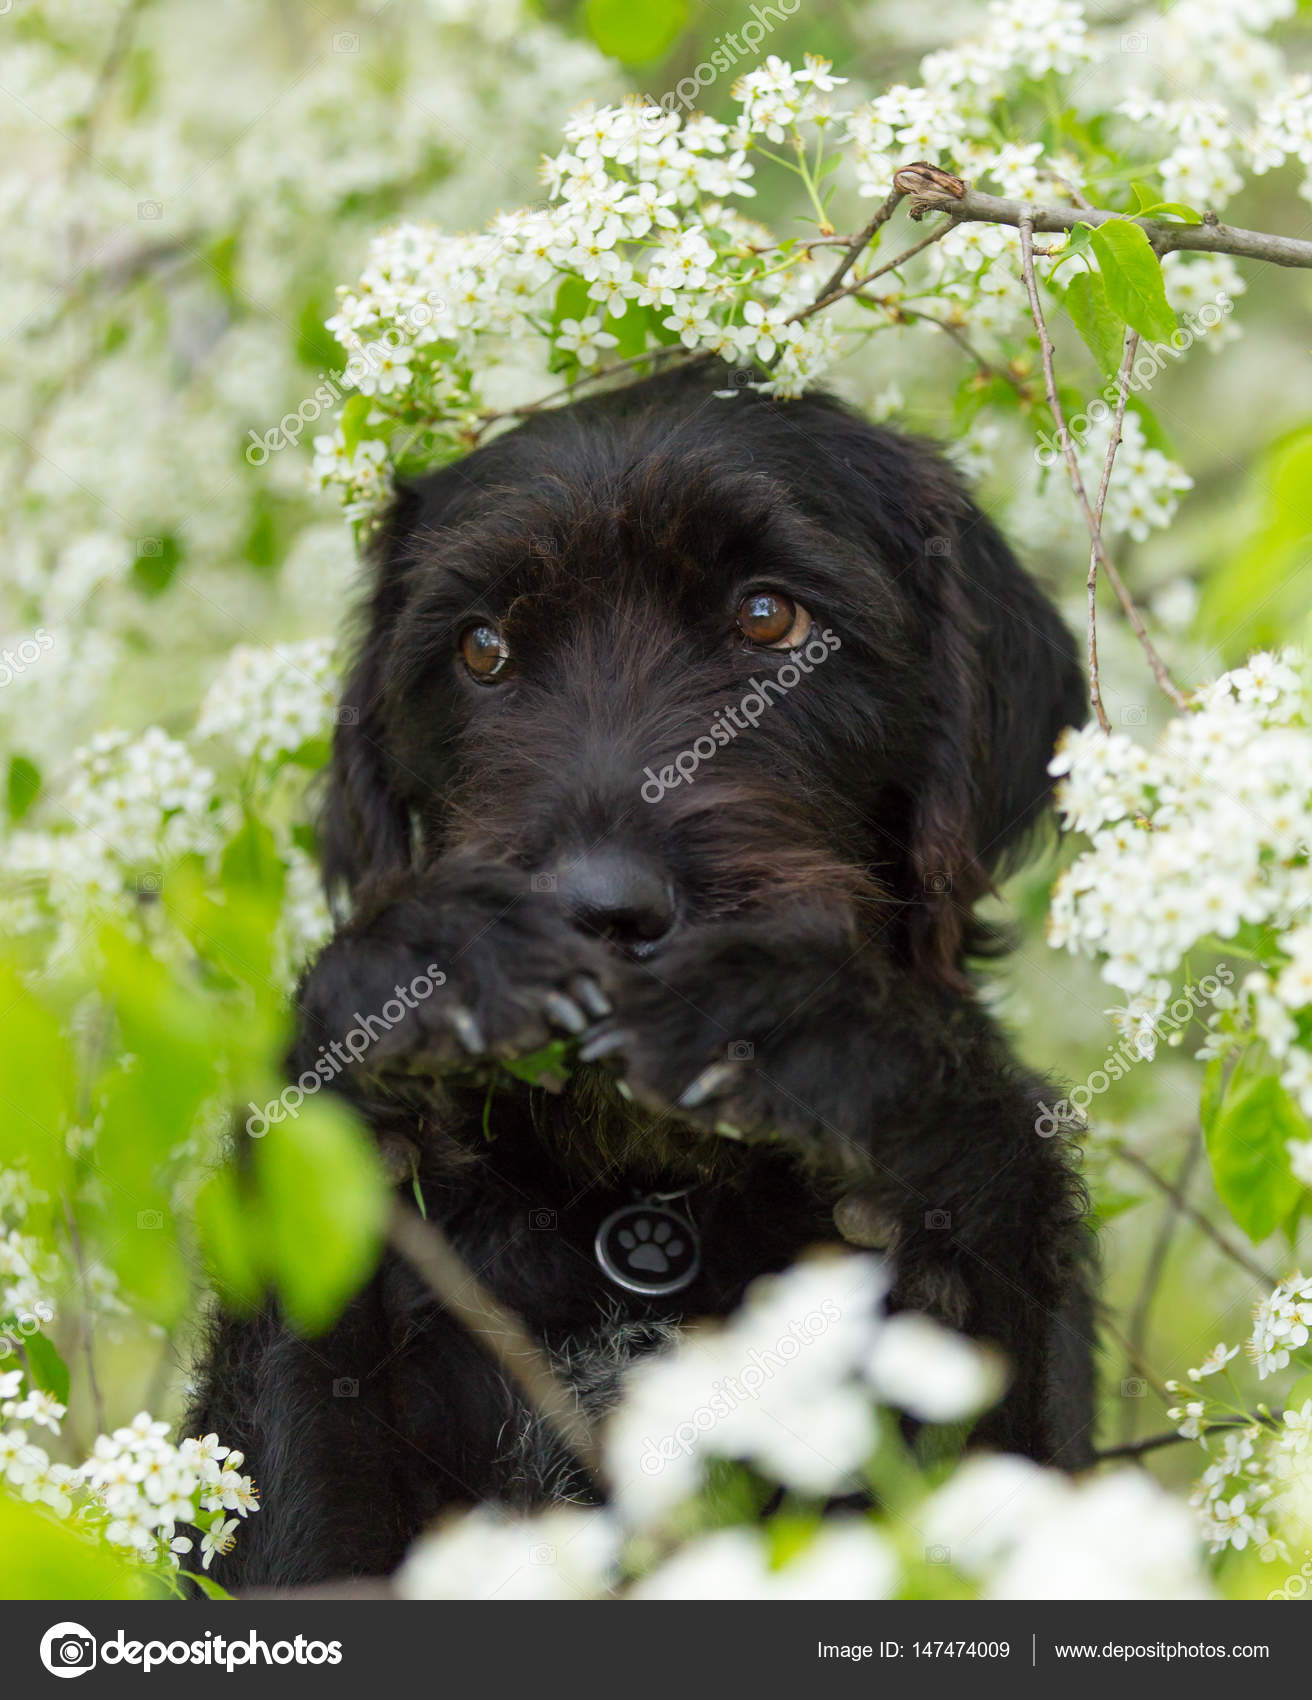 Cute black mutt dog with funny face stock photo kesu01 147474009 cute black mutt dog with funny face sitting on spring meadow photo by kesu01 voltagebd Gallery